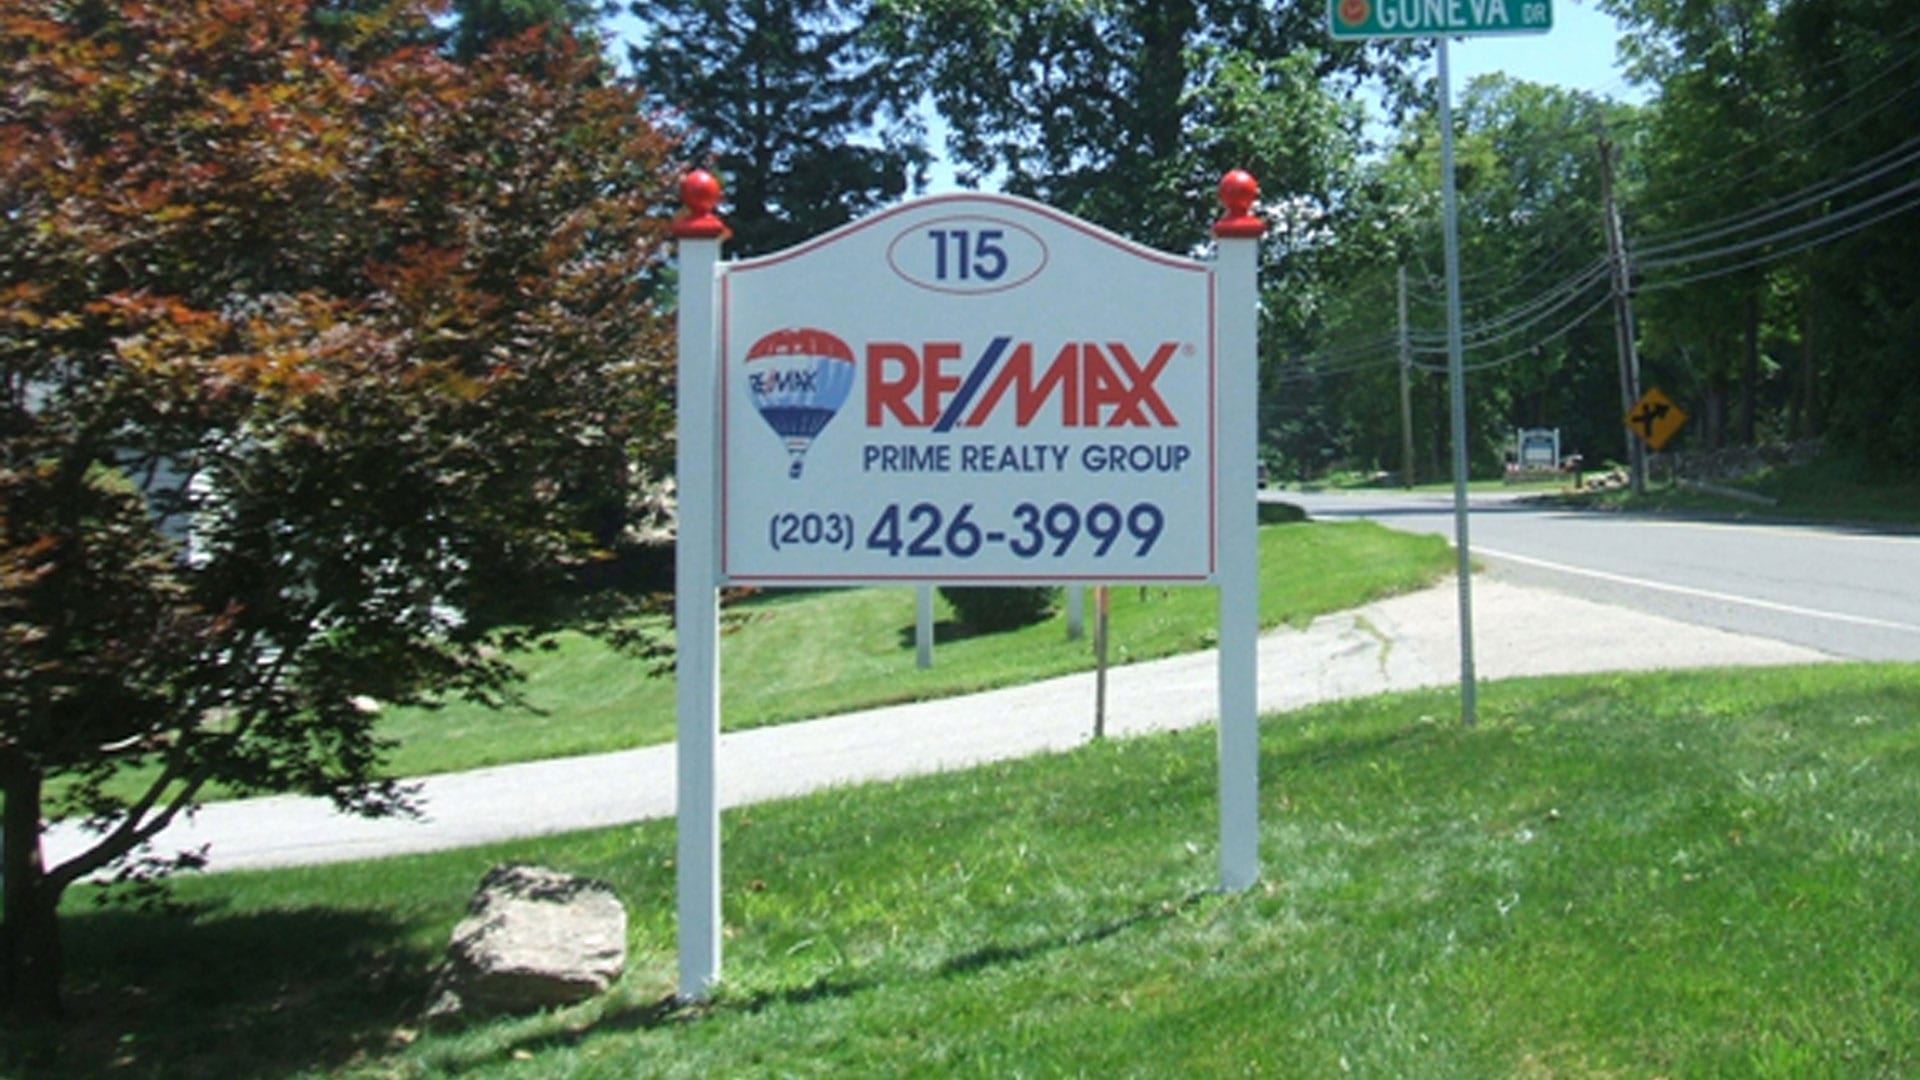 Real estate sign on uneven ground